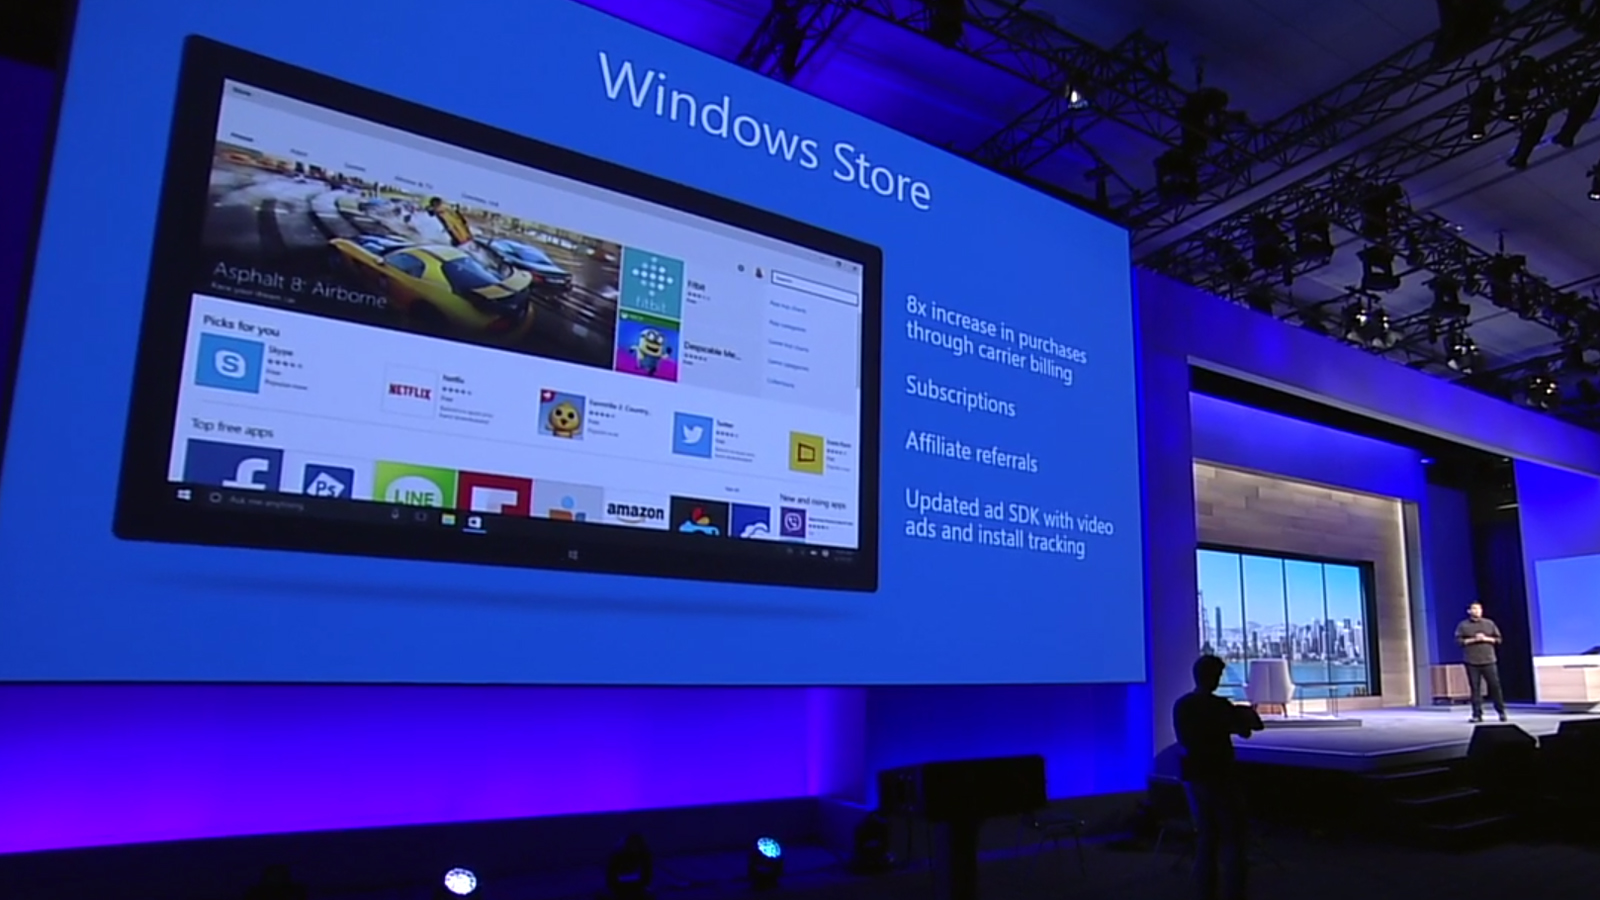 Windows 10 for Phones will beef up its store with retooled